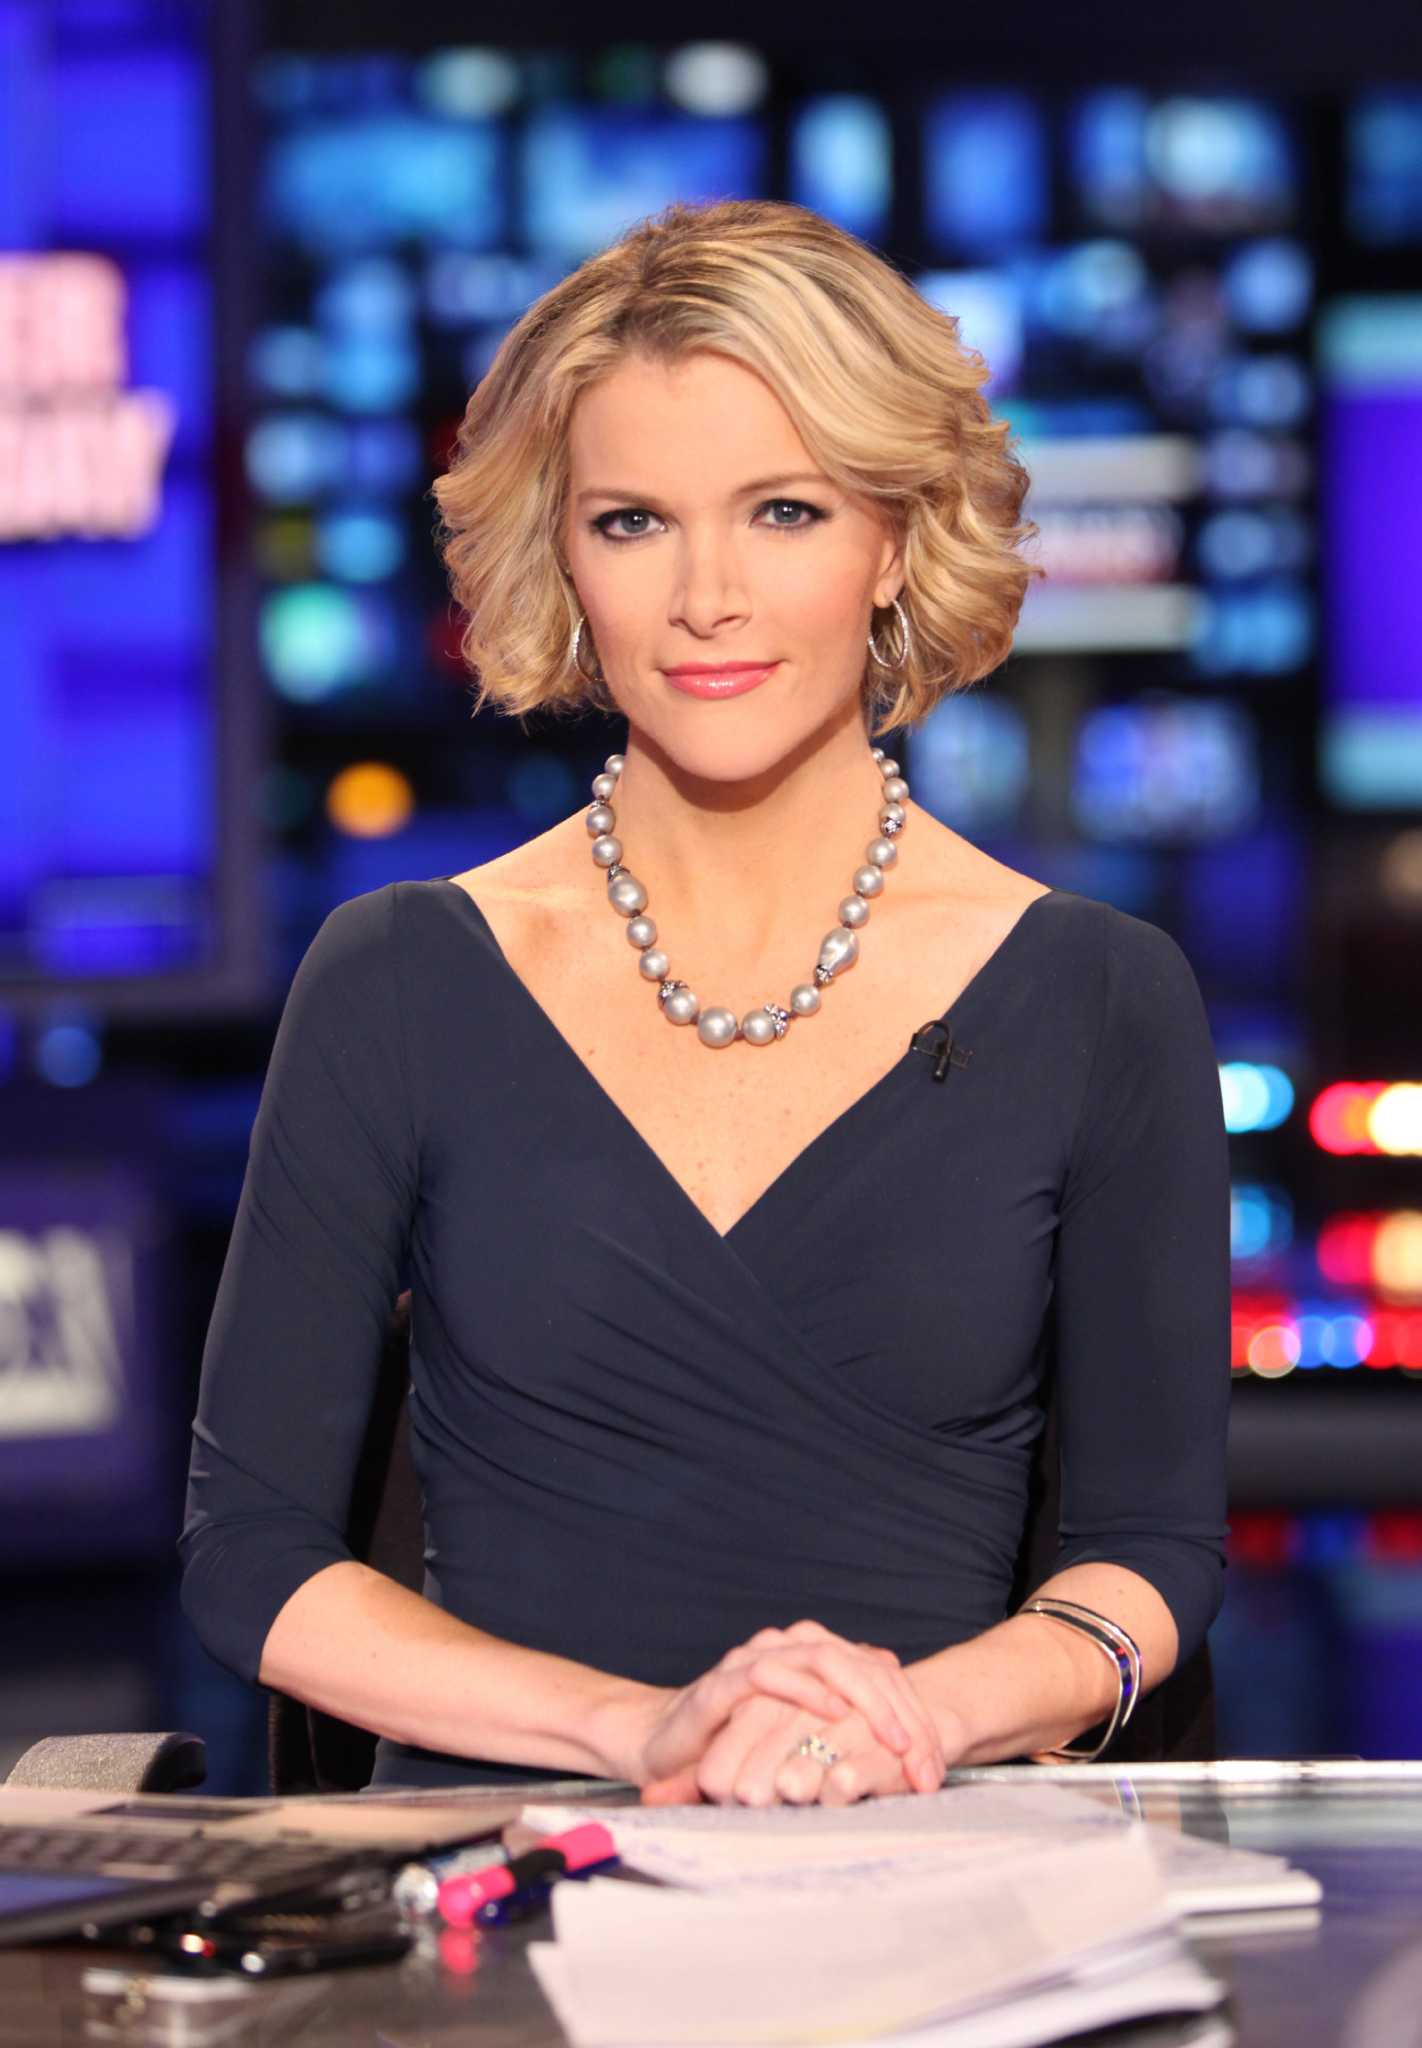 Fox S Megyn Kelly Solidifying On Air Persona And Ratings